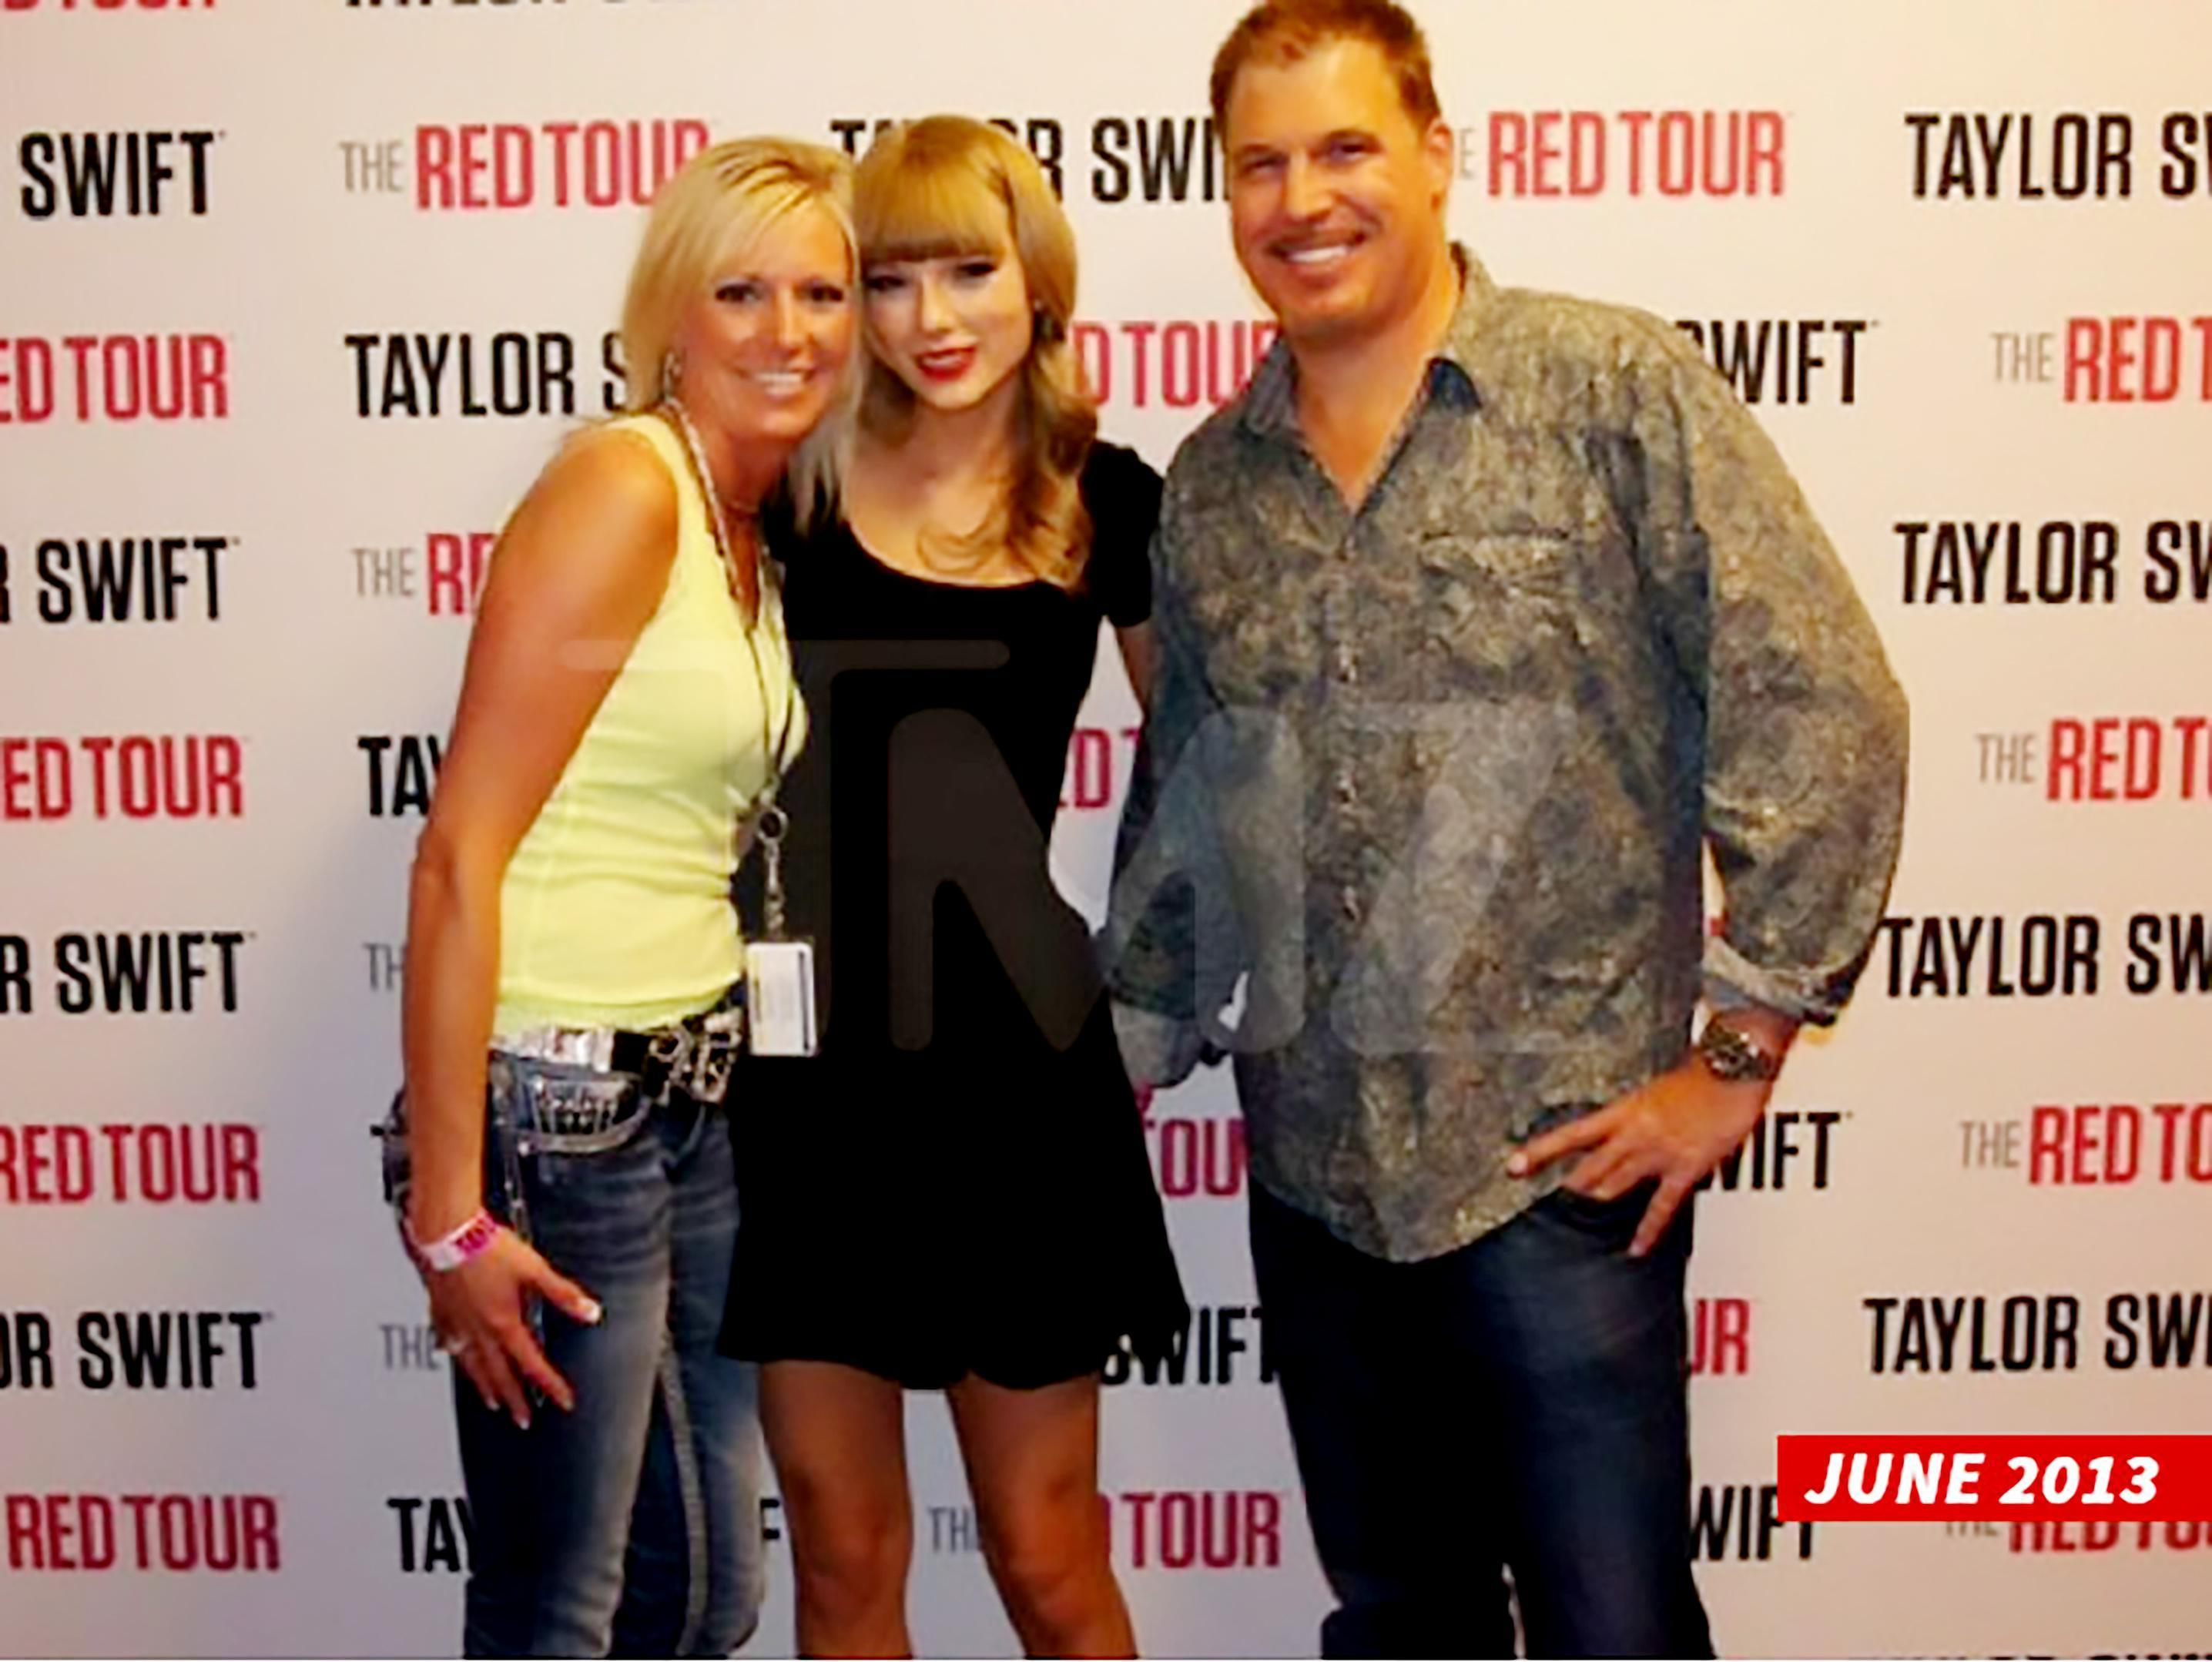 Here's the Taylor Swift grope picture of David Mueller and what happened in the court case